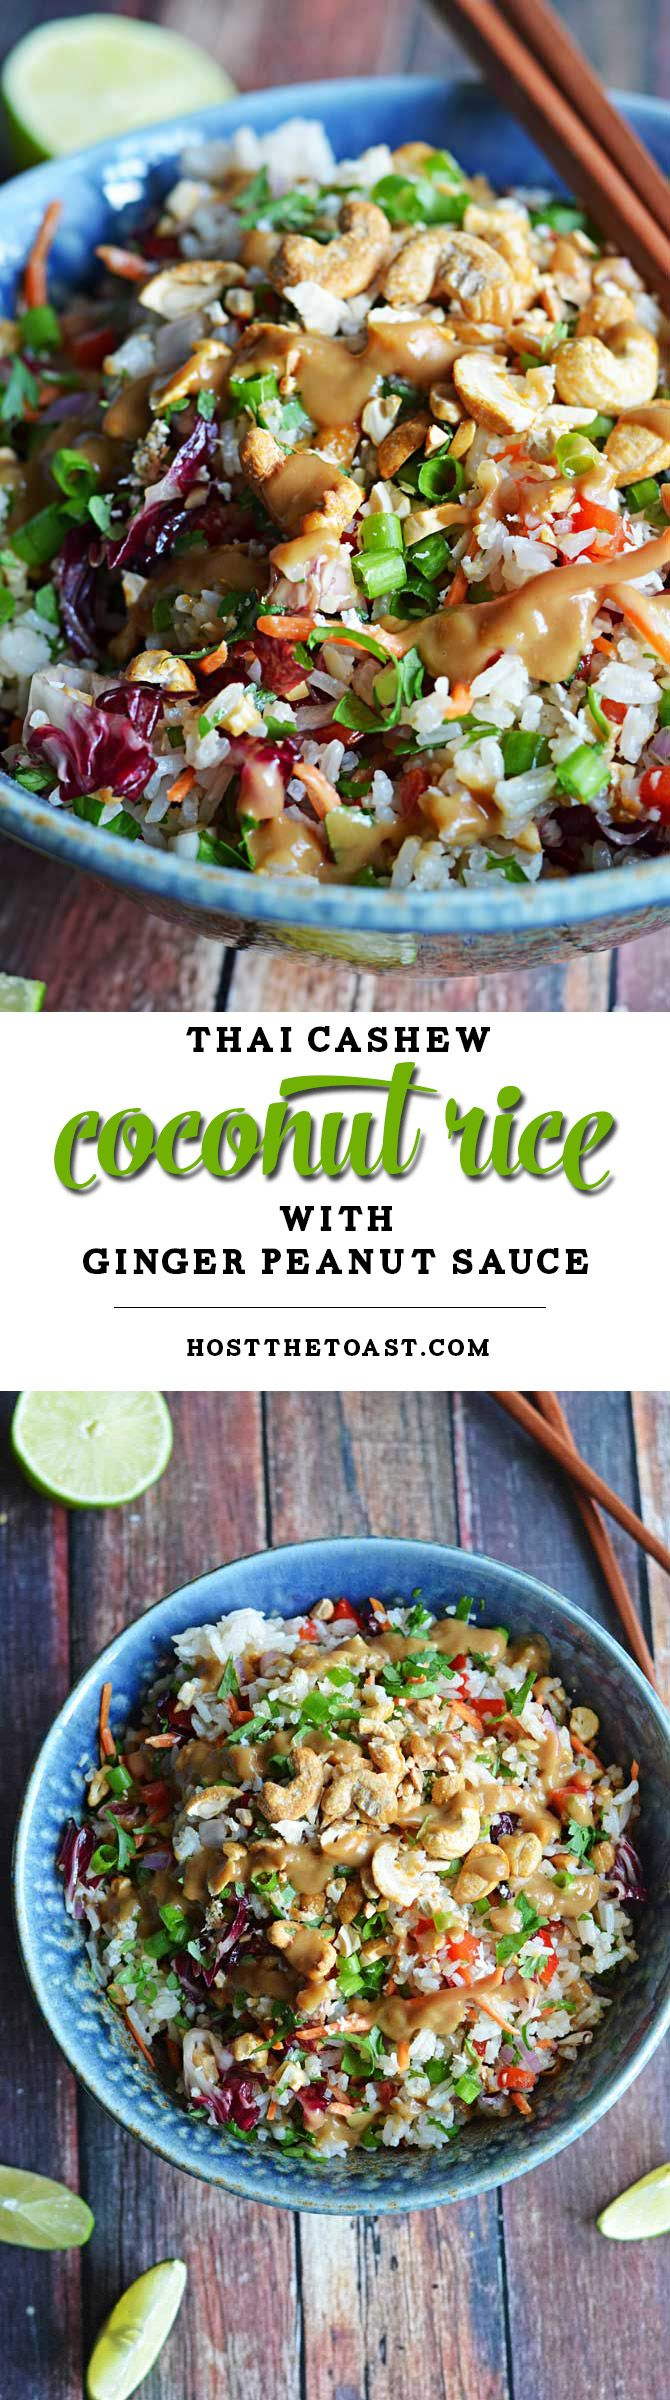 Gluten-Free Thai Cashew Coconut Rice with Ginger Peanut Sauce Recipe